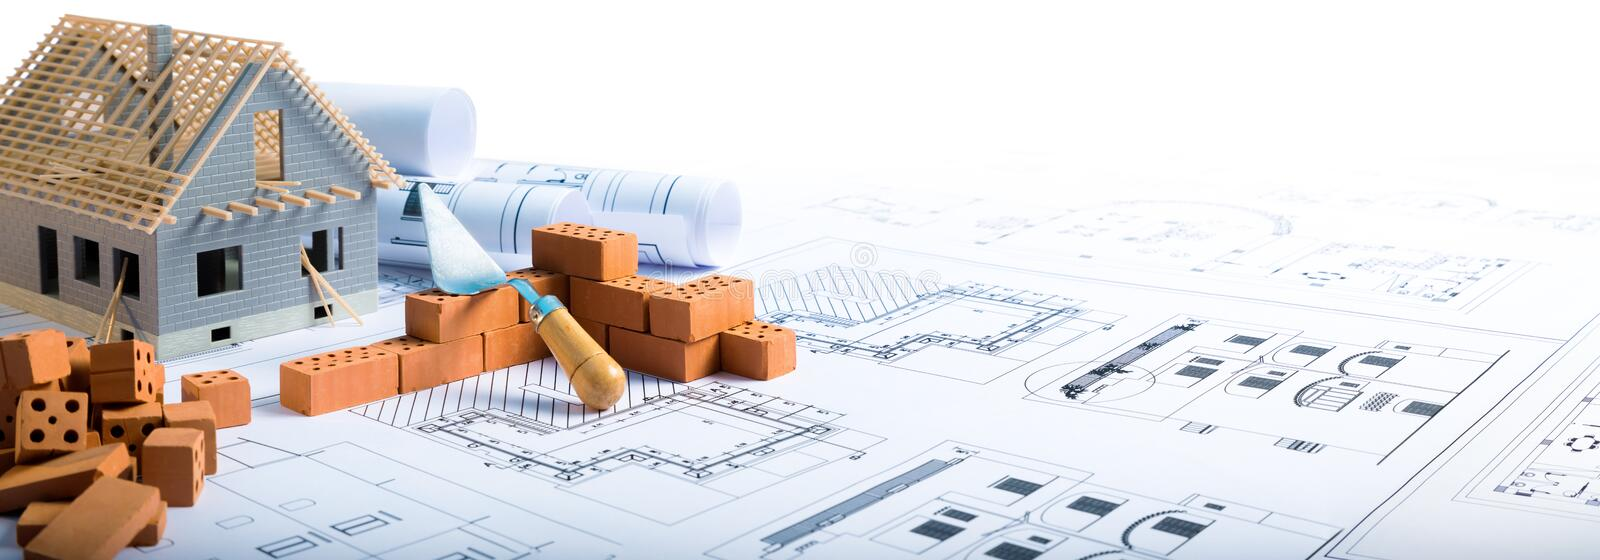 Building house - bricks and project royalty free stock photo